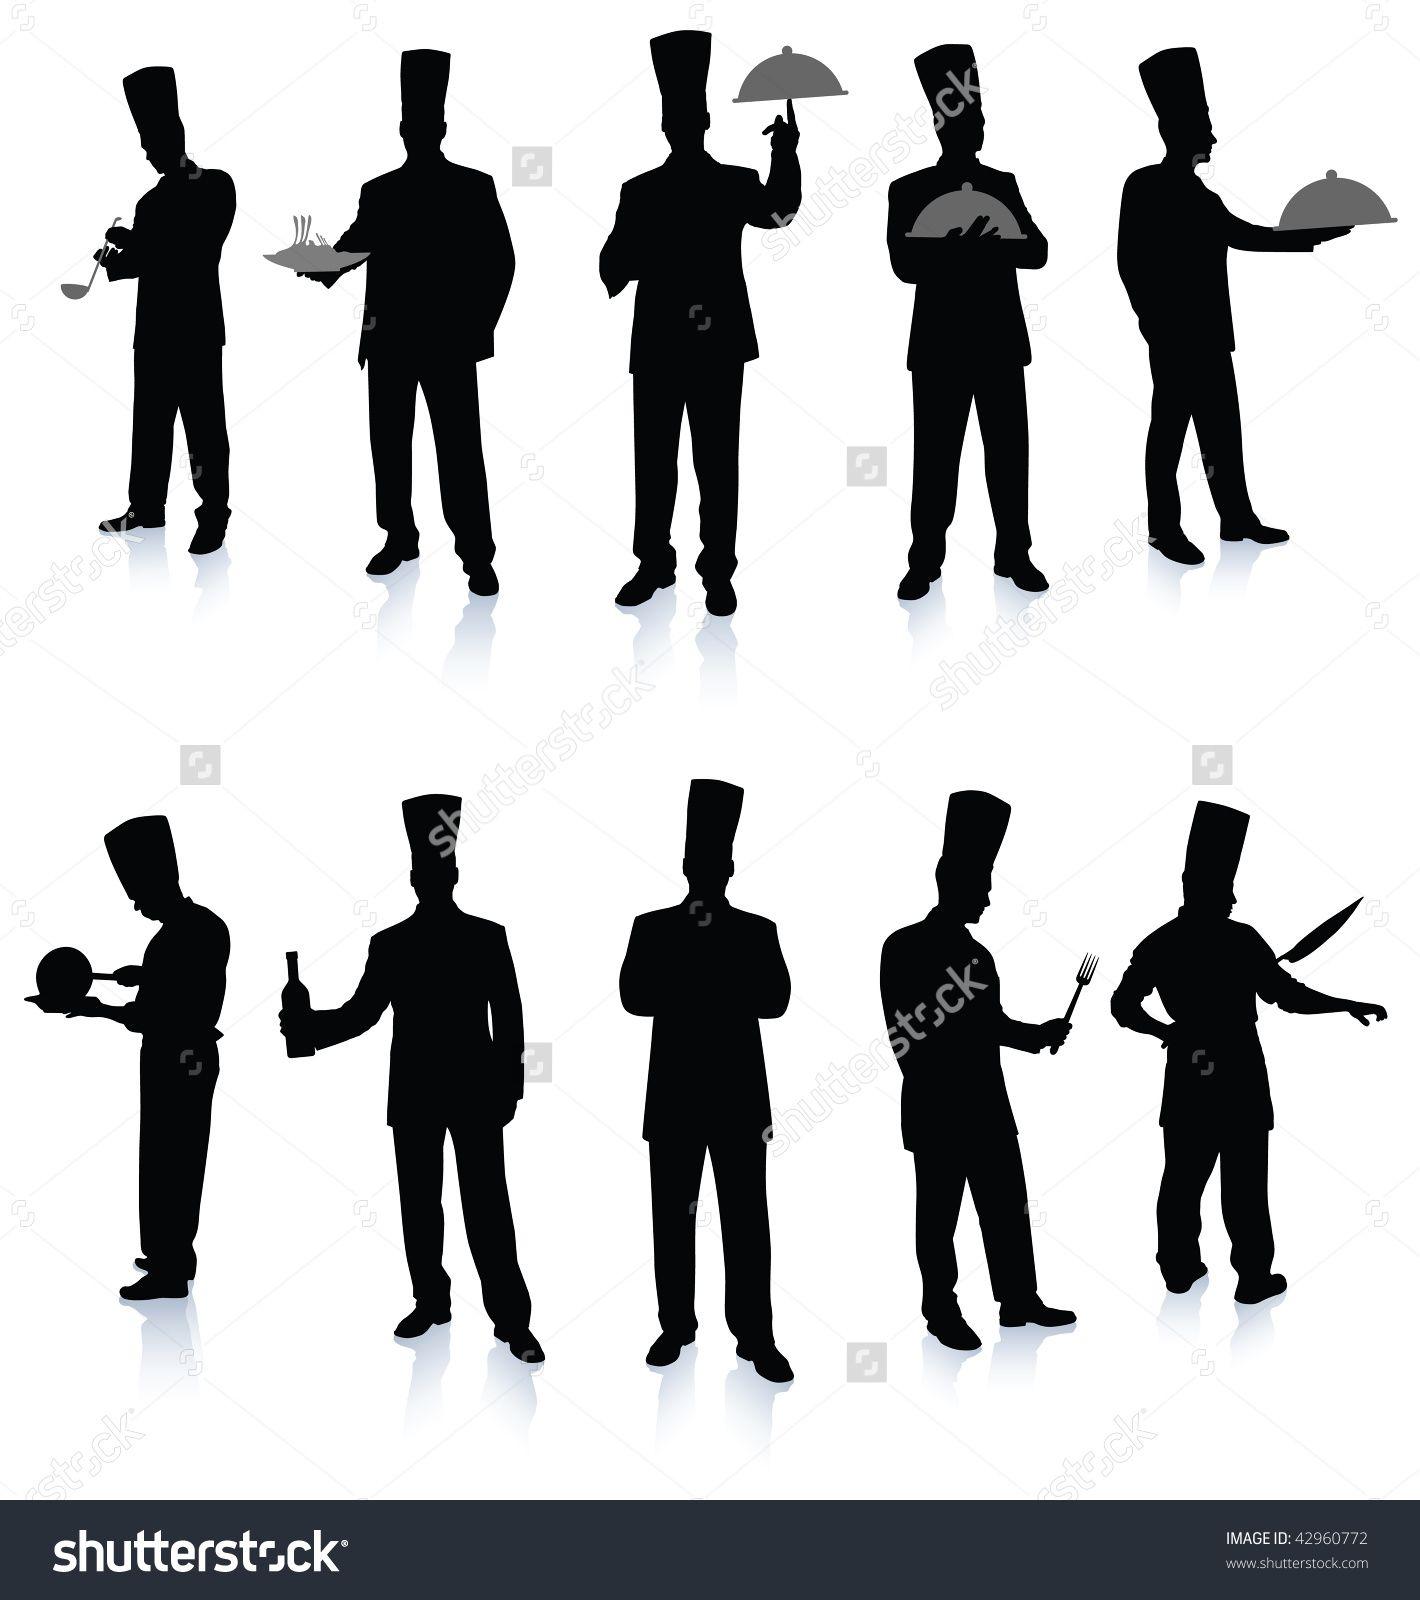 1420x1600 Image Result For Png Chef Silhouette Png People